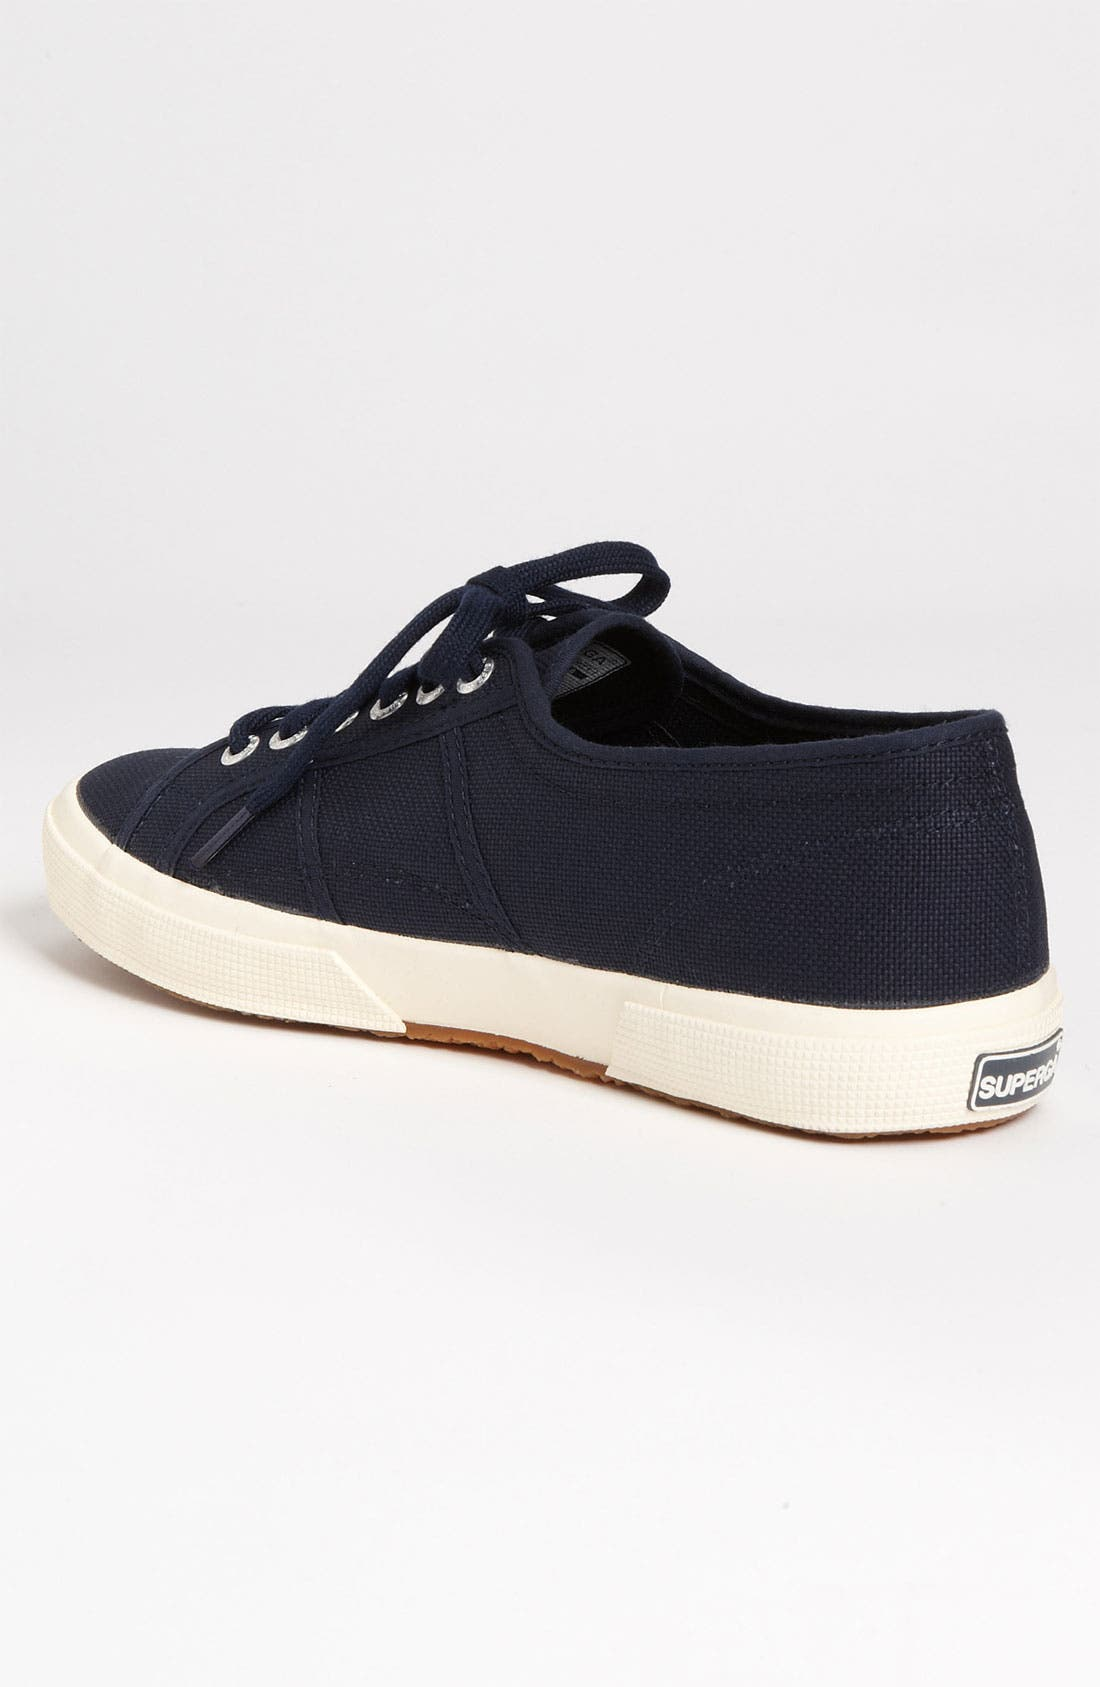 Alternate Image 2  - Superga 'Cotu' Sneaker (Men)